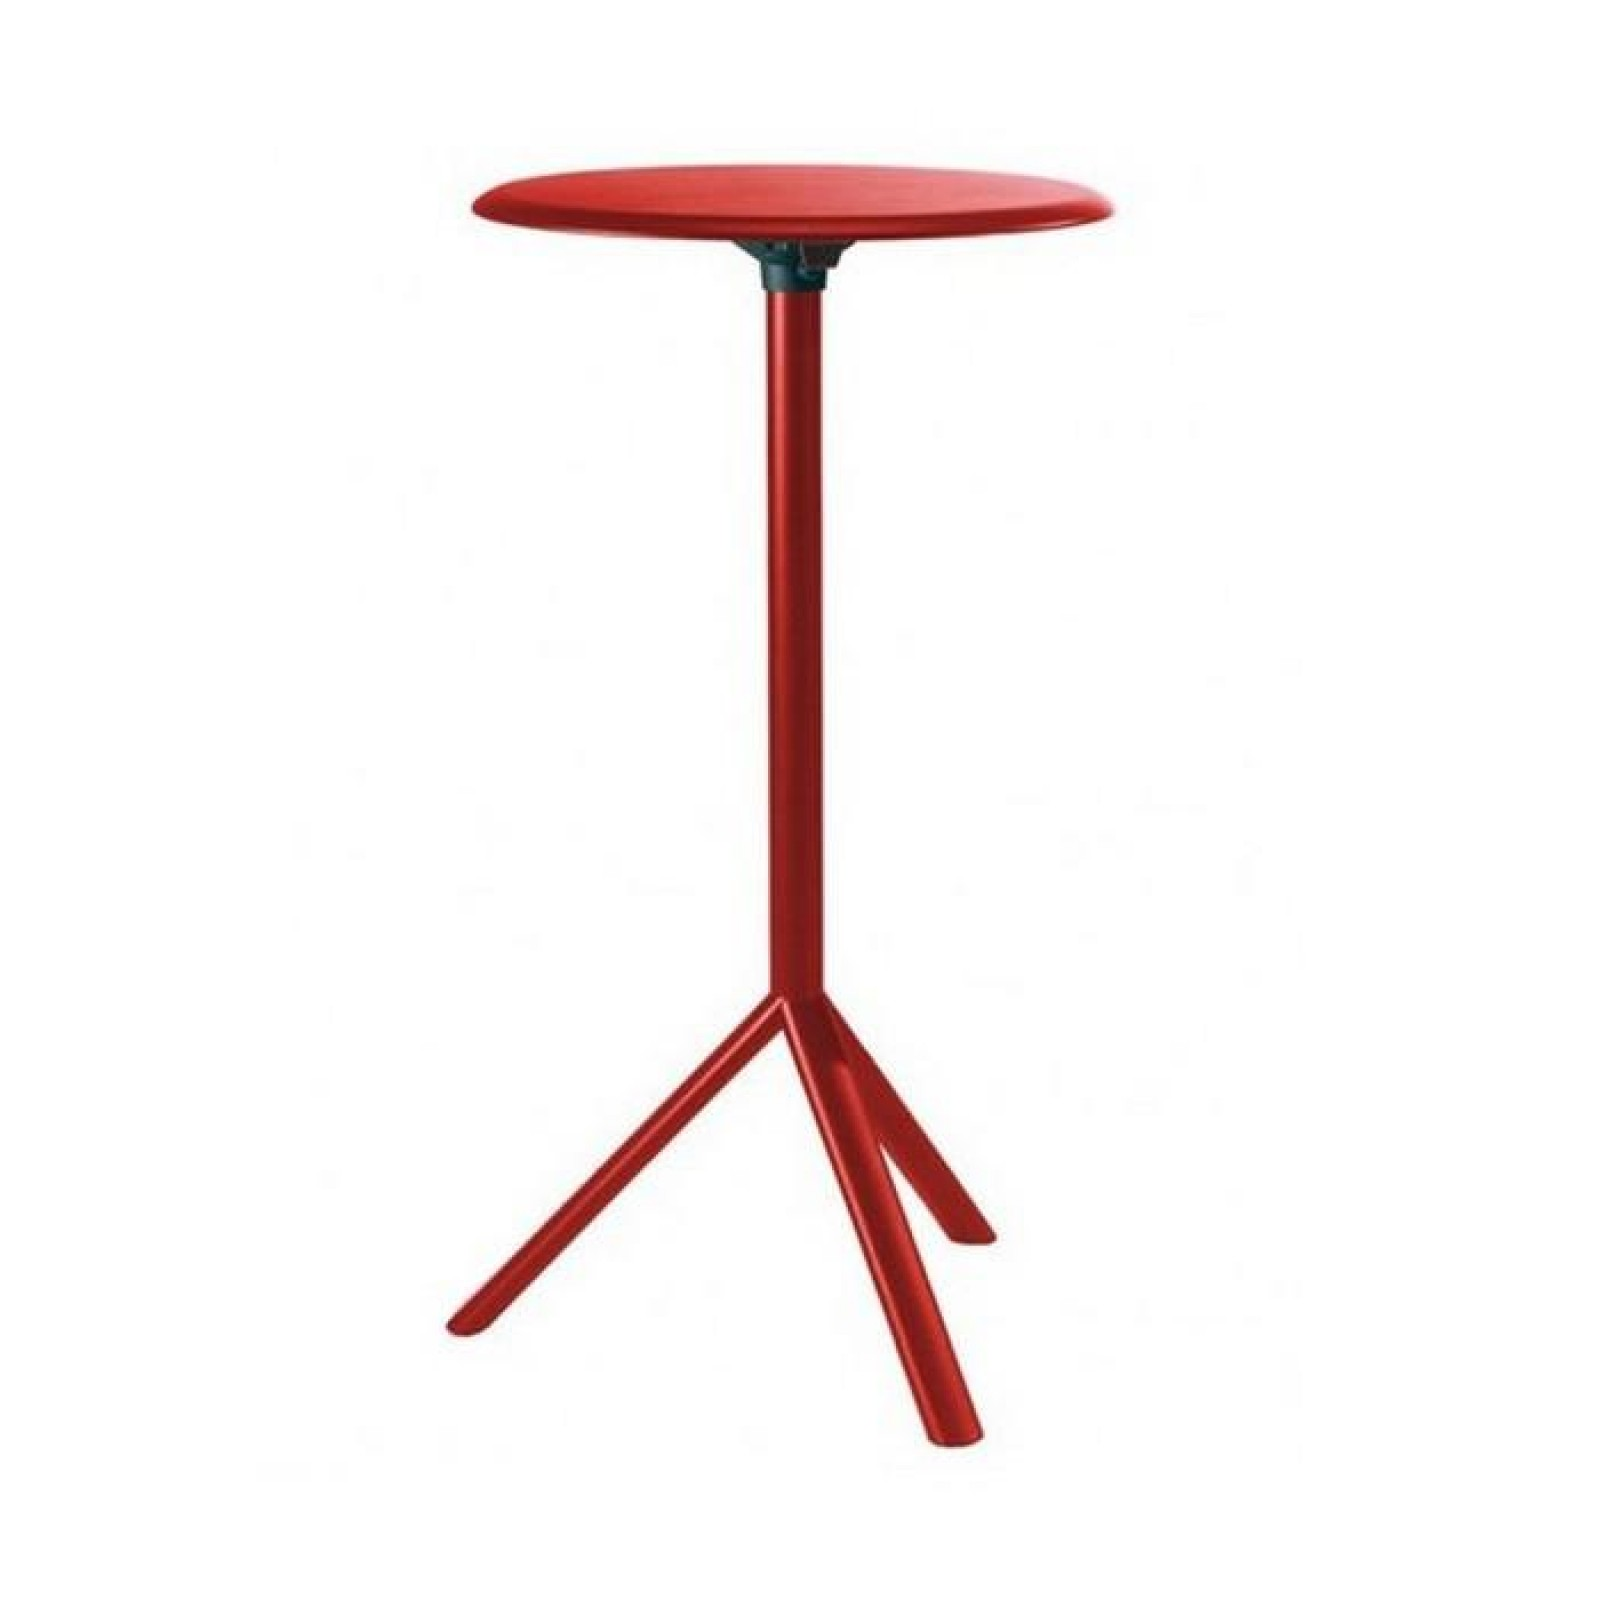 MIURA High Round Table - PLANK-Traffic Red-Diameter 60 cm Metal